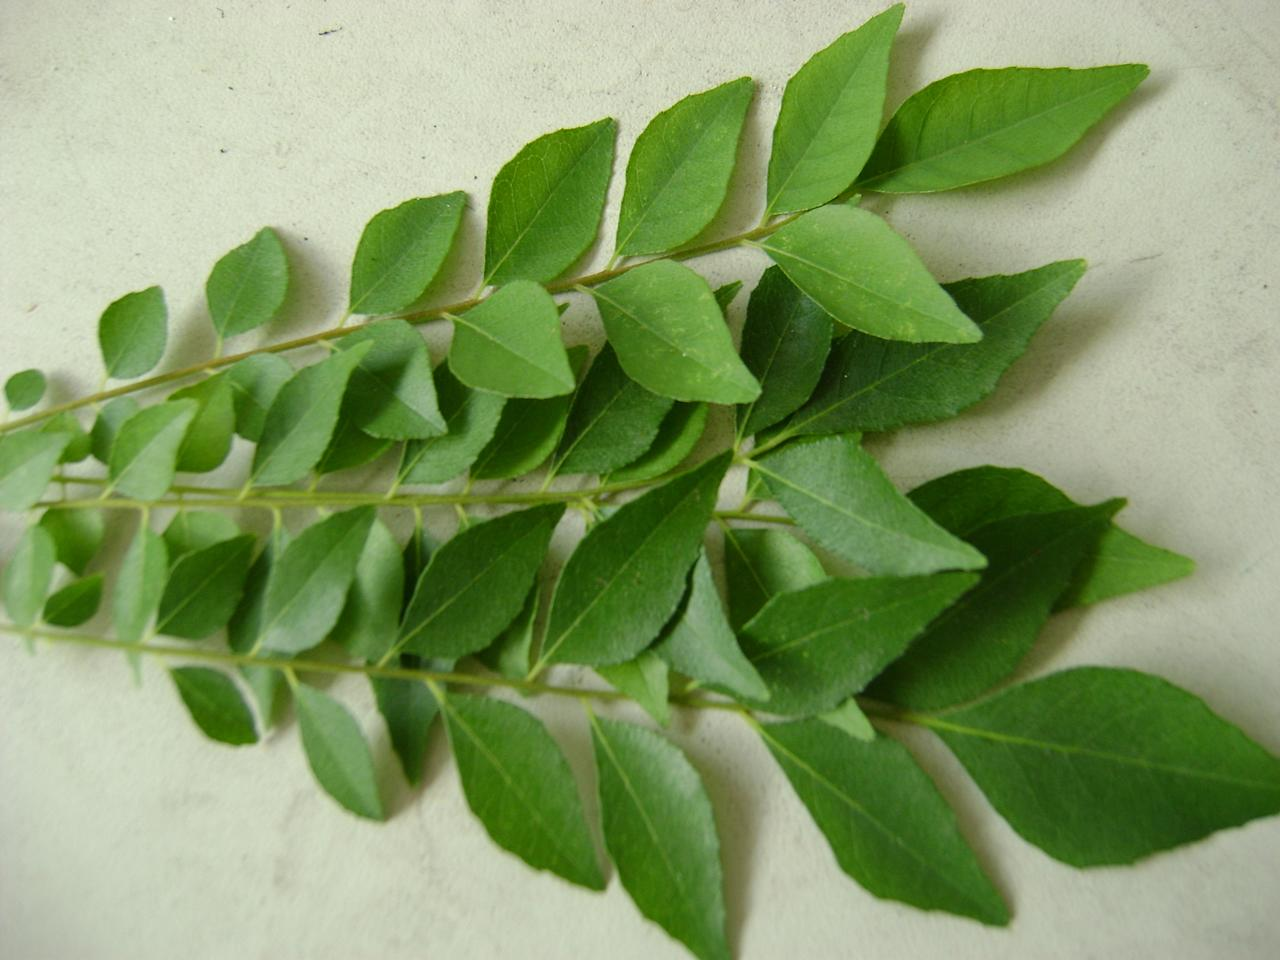 """<p>Curry leaves are packed with nutrition. They contain Vitamin A, Vitamin B, Vitamin C, Vitamin E, antioxidants and amino acids. They are also rich in carbohydrates, phosphorous, iron, magnesium, copper, fiber, minerals, amino acids and flavonoids. Research shows that alkaloids found in curry leaves possess antioxidant properties. Now doesn't something like this spike up the health quotient? """"Creative Commons Curry Leaf"""" by Sue Mah is licensed under CC BY 2.0 </p>"""